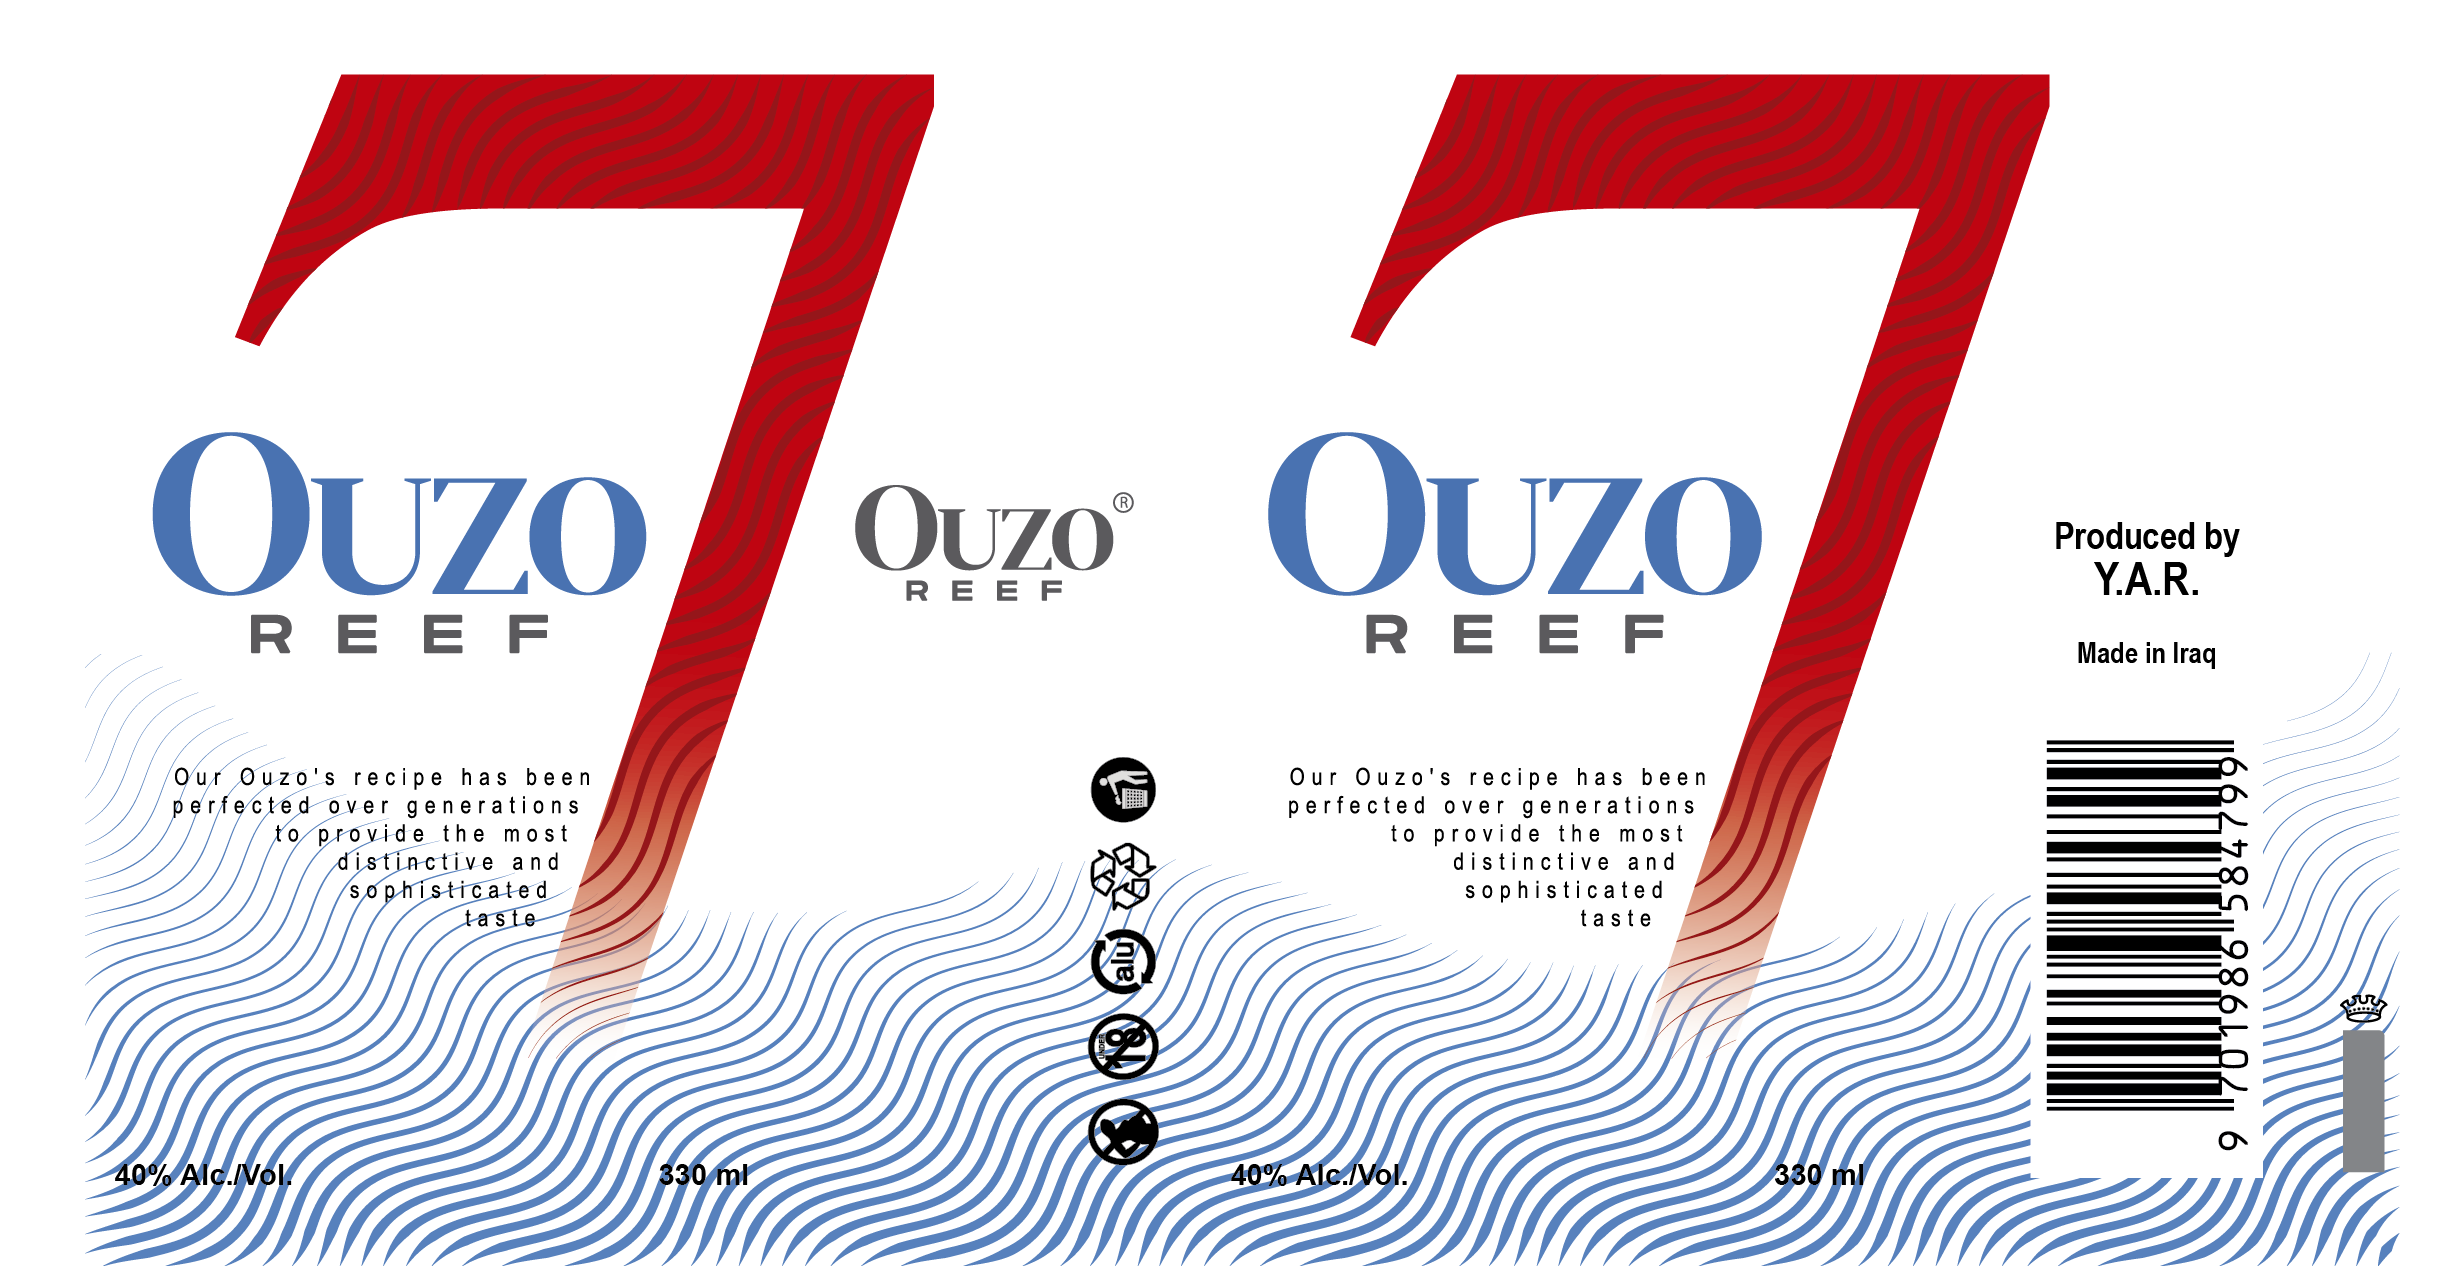 Ouzo Reef 7 - Ouzo cans design/artwork